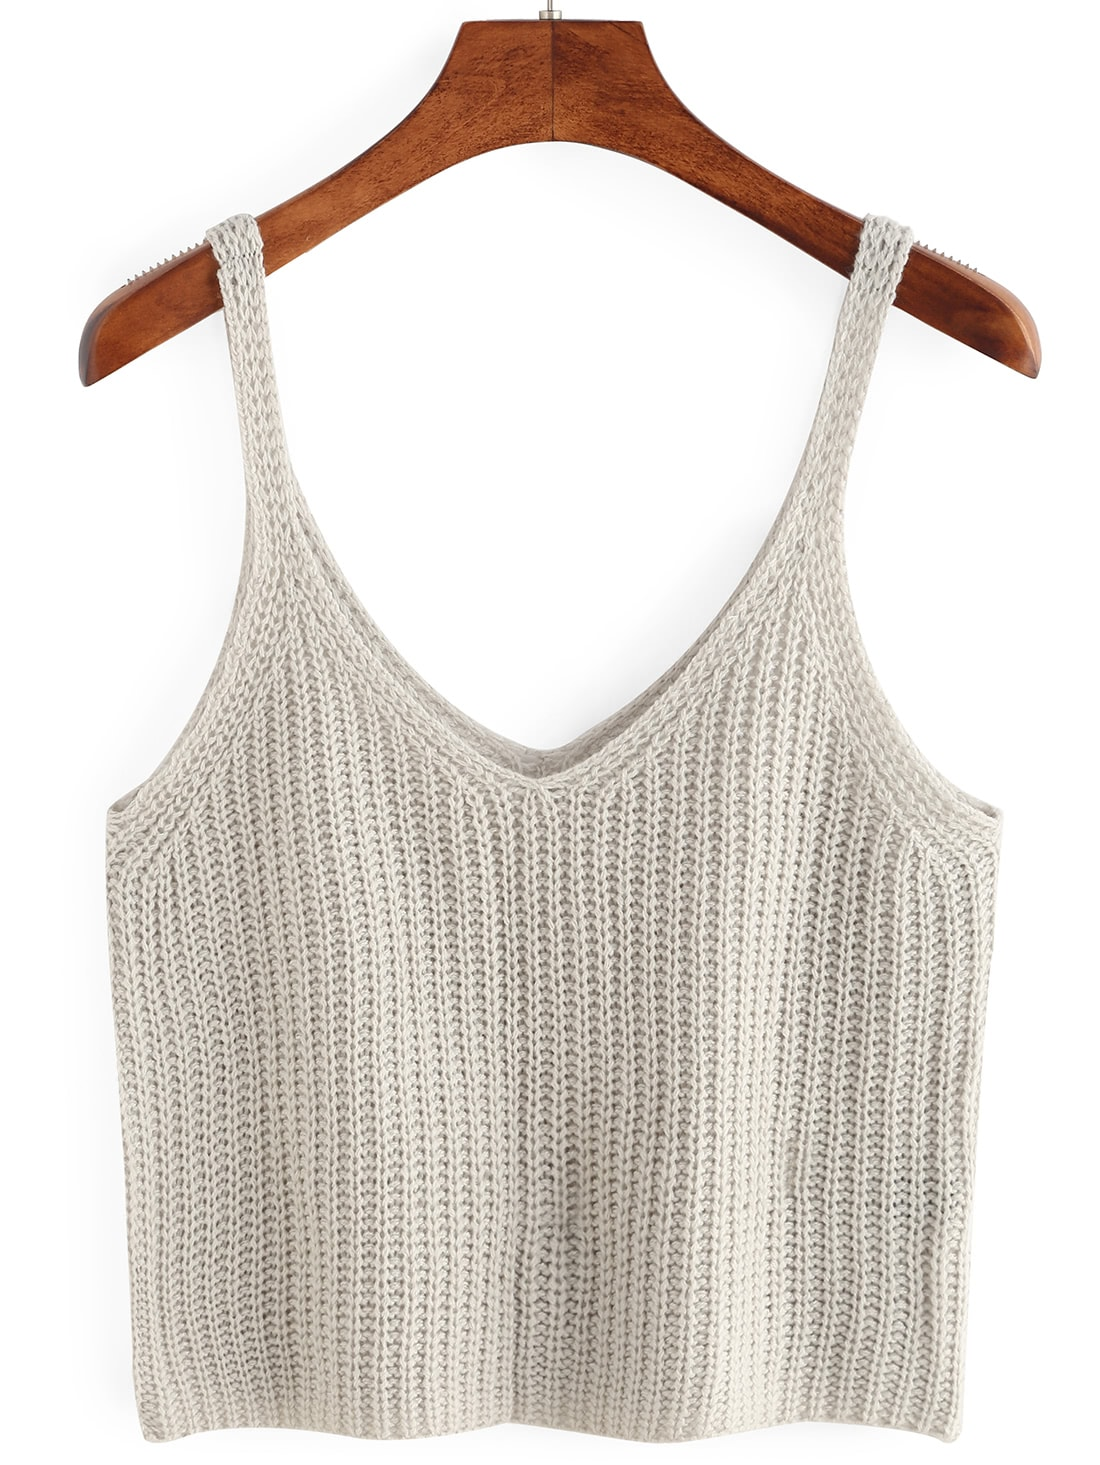 Knitted Crop Tank Top vest160420151